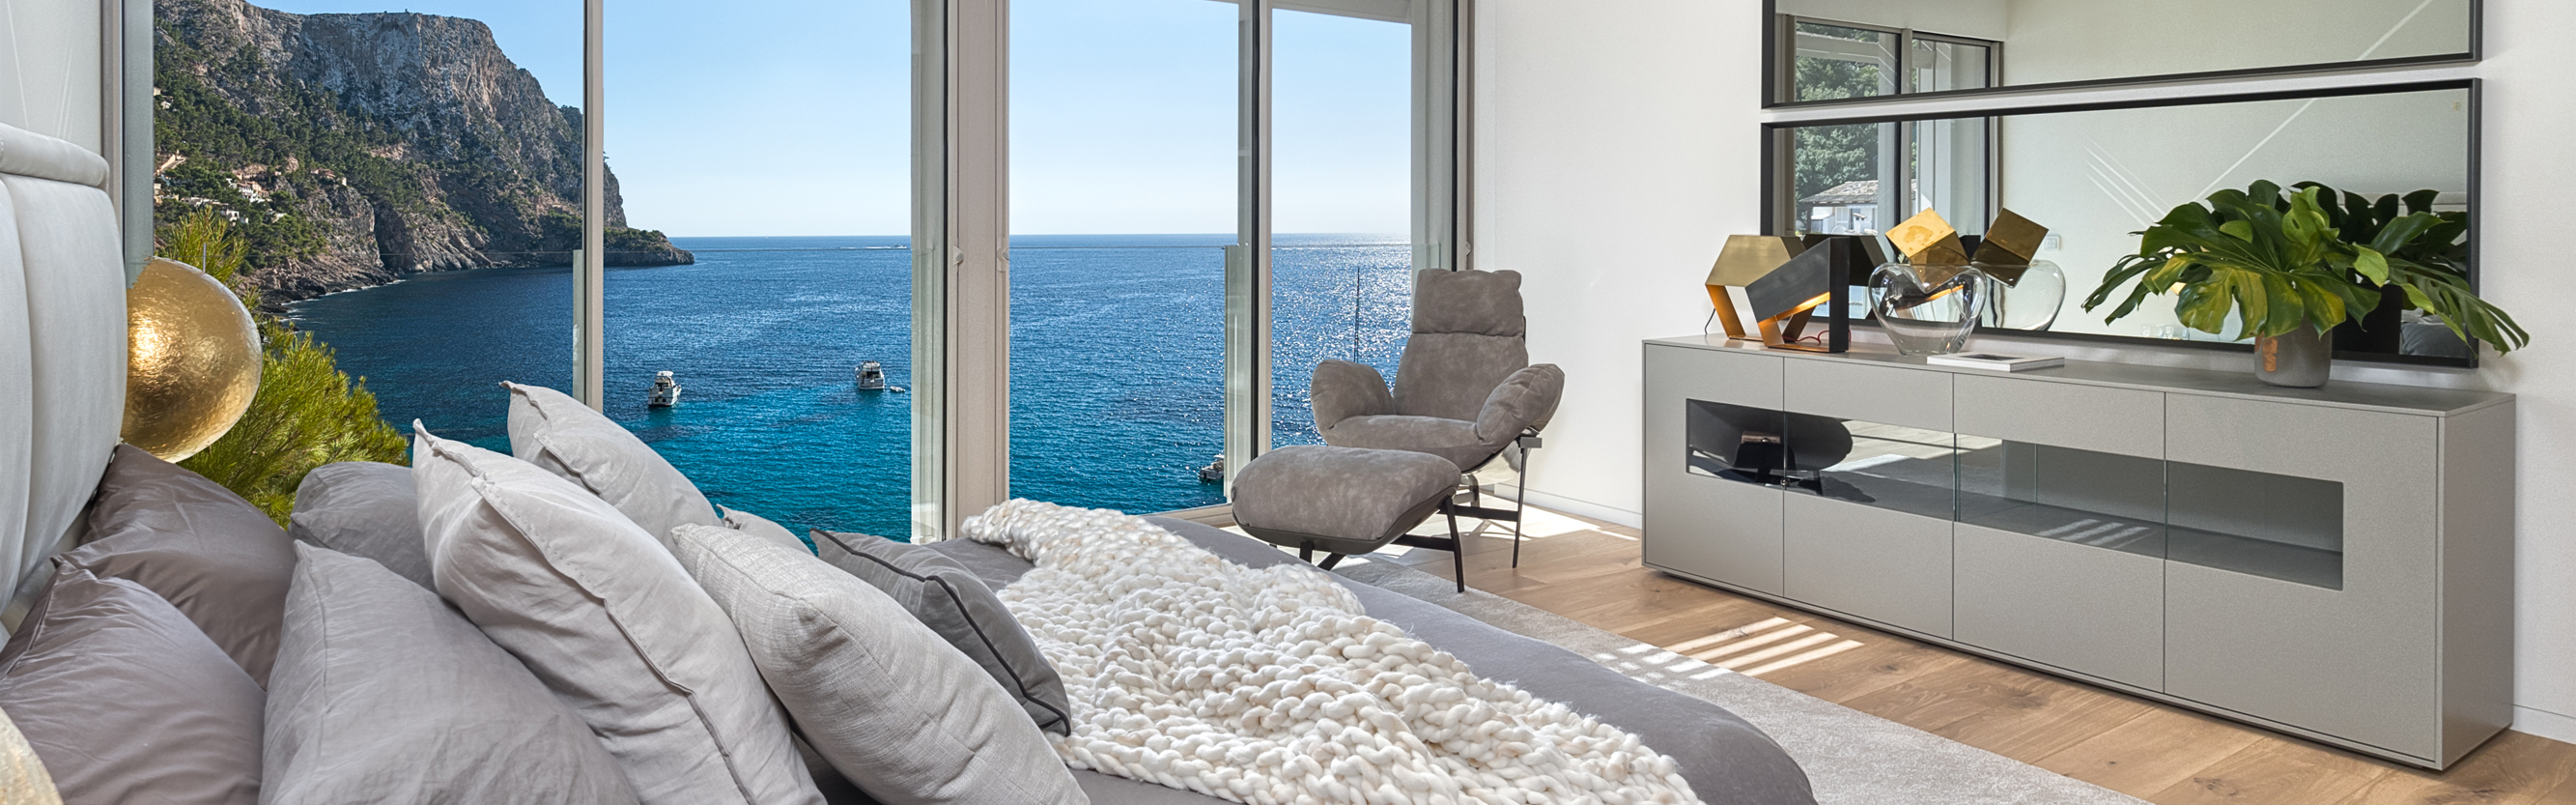 Balearen, Spanien - New Folies - New development with villas for sale in Port Andratx, Mallorca